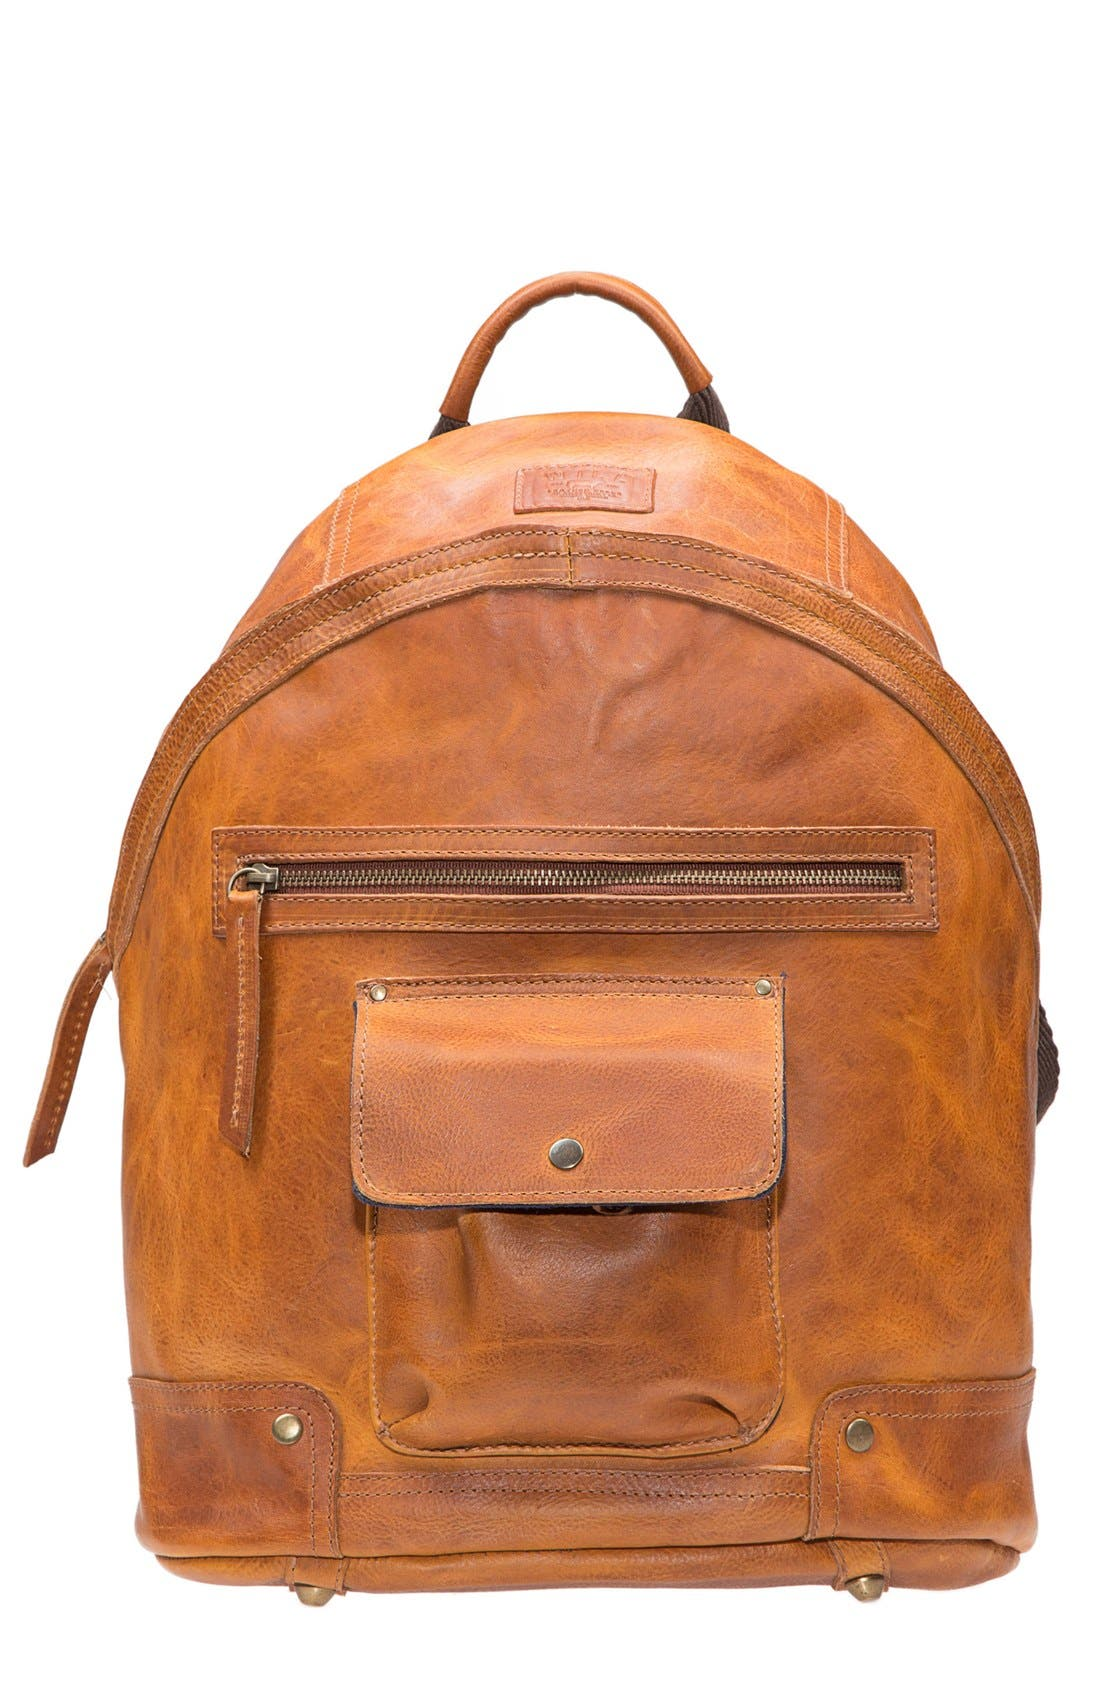 Will Leather Goods 'Silas' Backpack